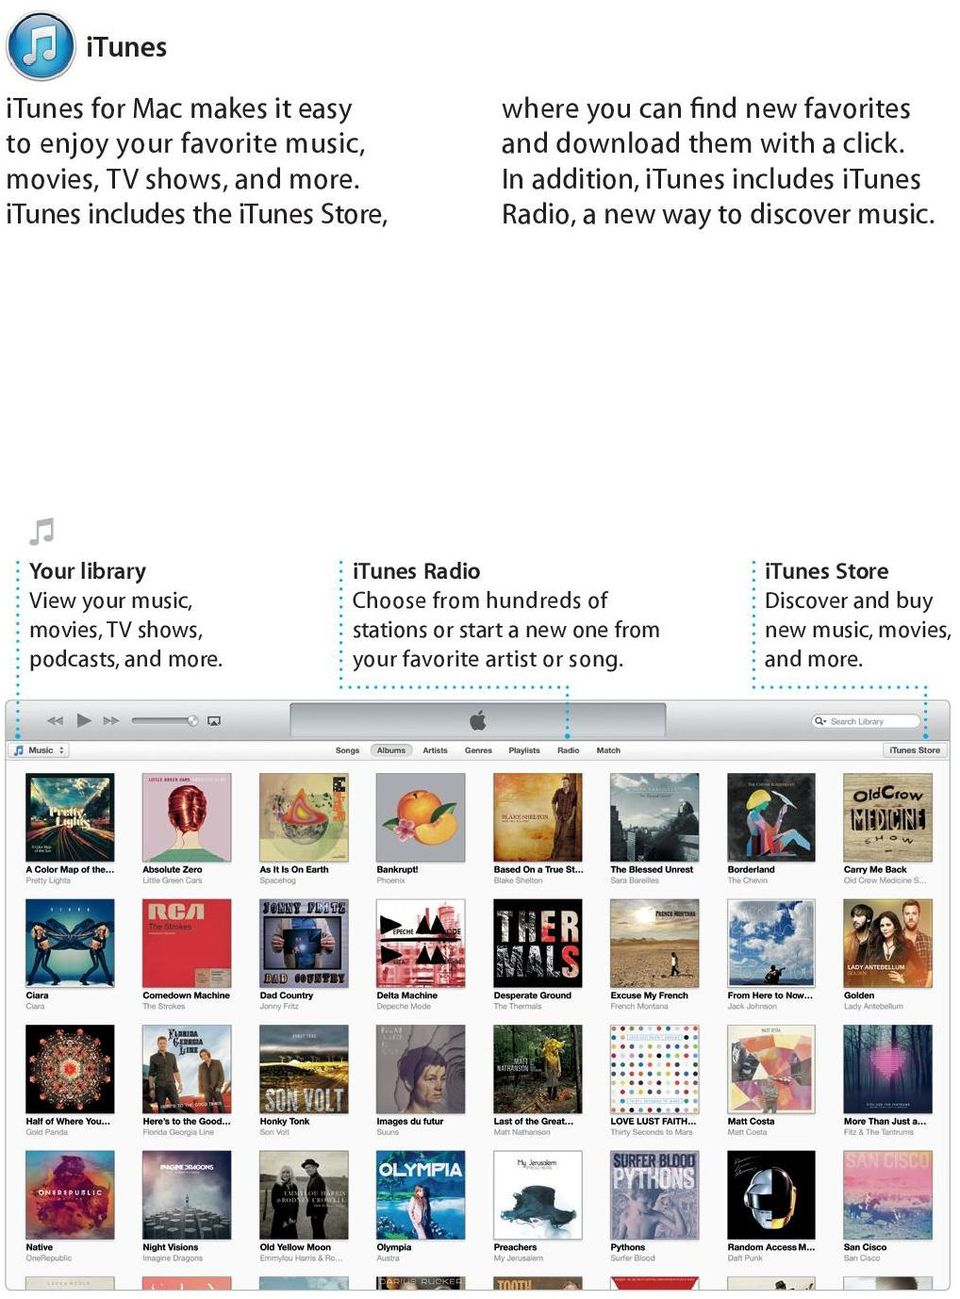 In addition, itunes includes itunes Radio, a new way to discover music.